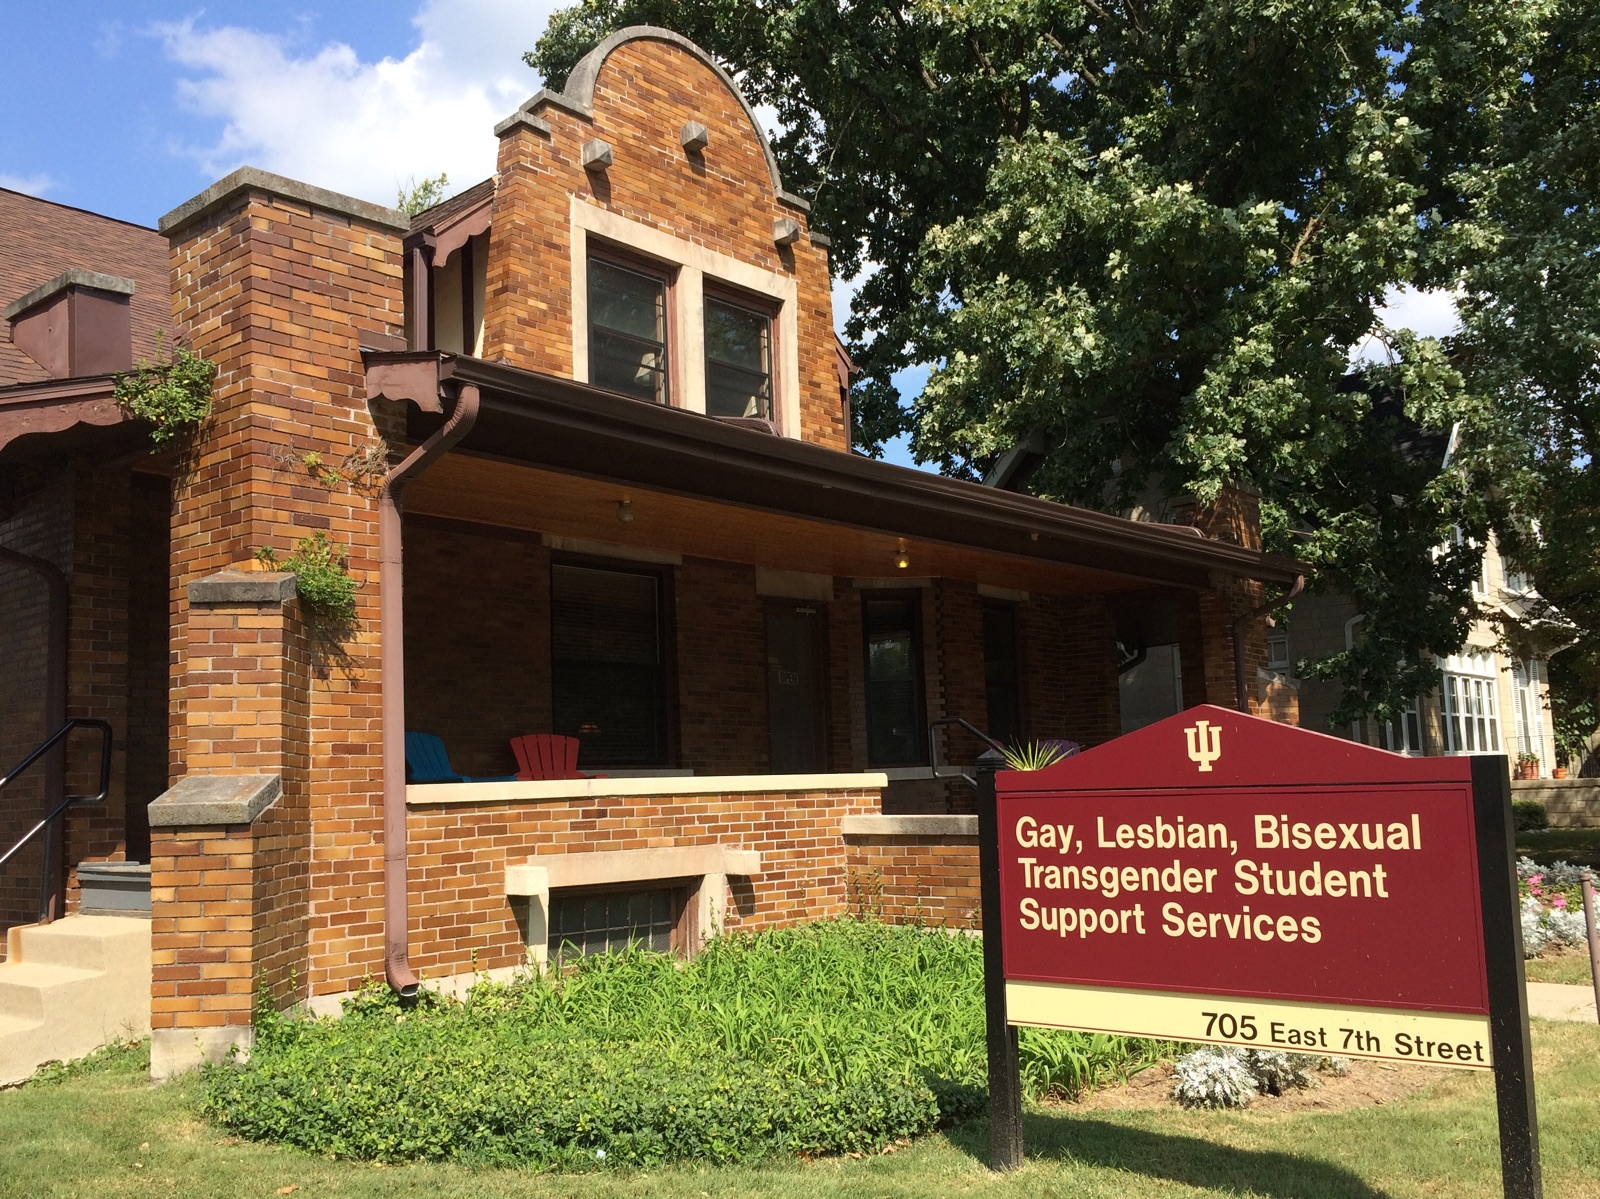 "A sign in front of a brick house with a front porch says ""Gay, Lesbian, Bisexual, Transgender Student Support Services 705 East 7th Street"""